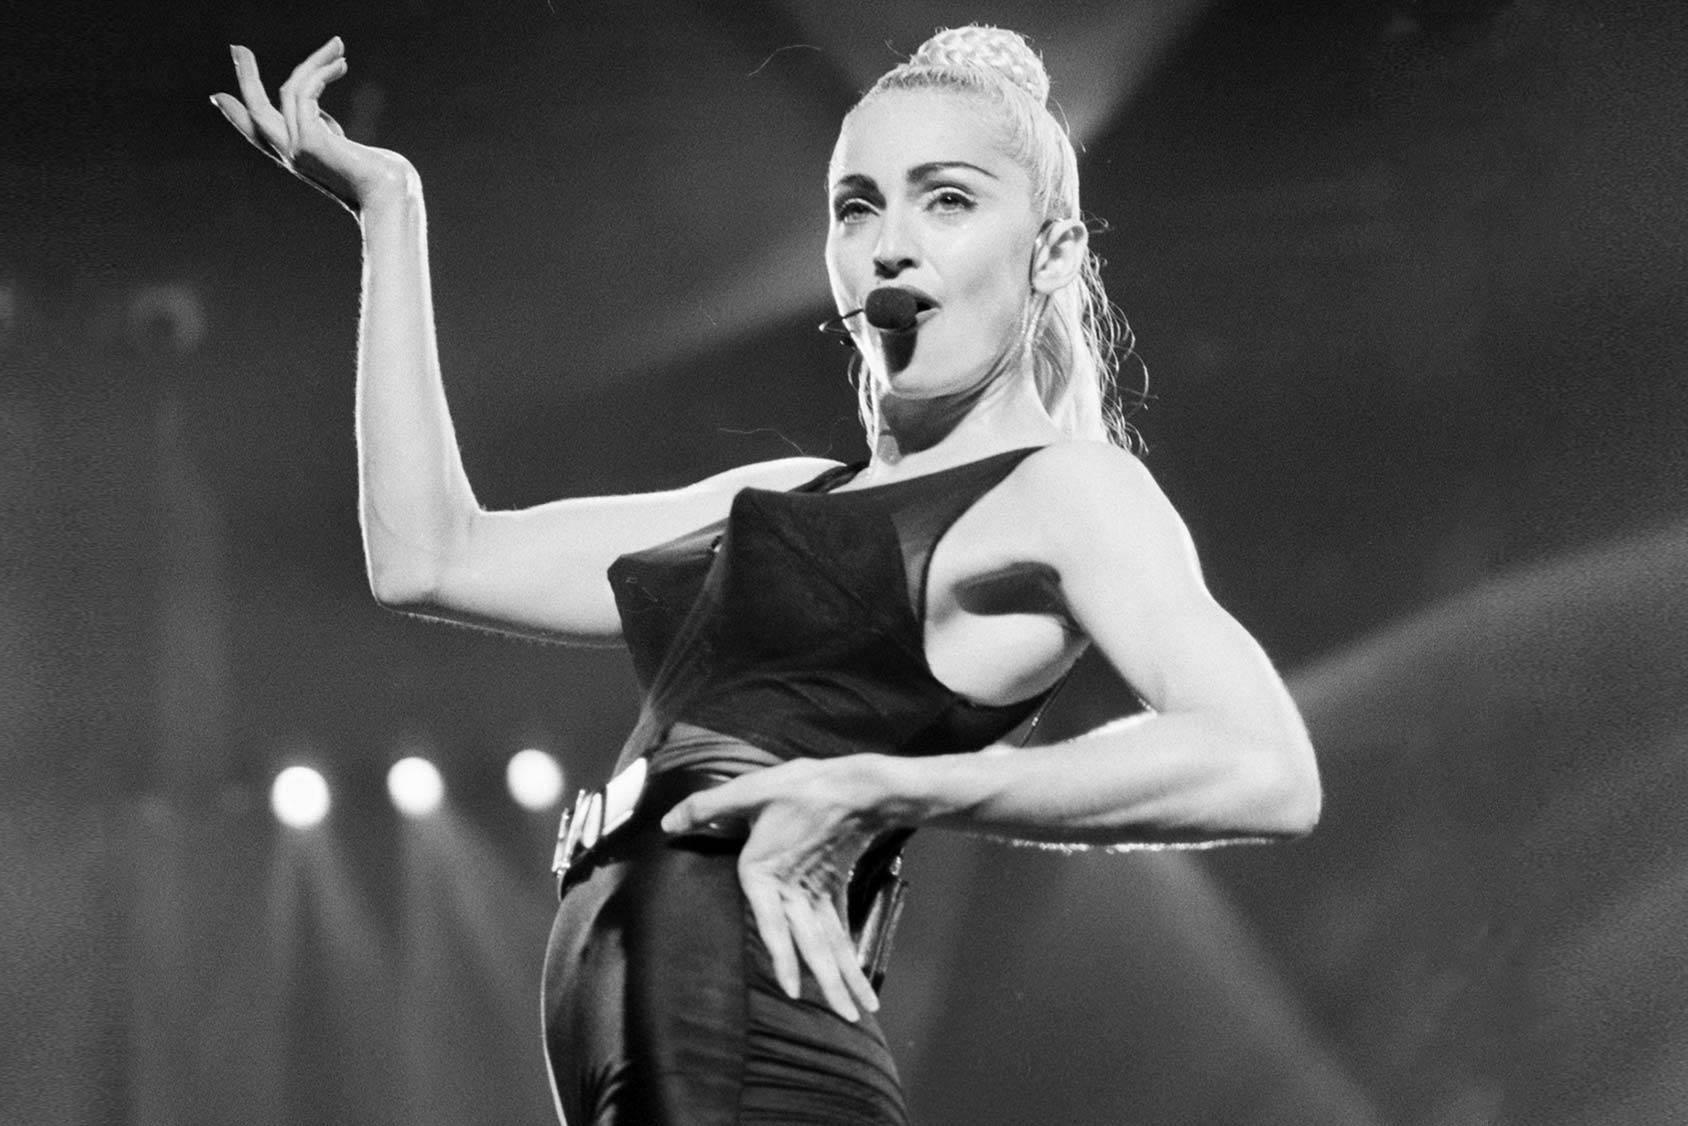 Madonna in the iconic cone brassiere for the Blond Ambition tour, Getty Images.